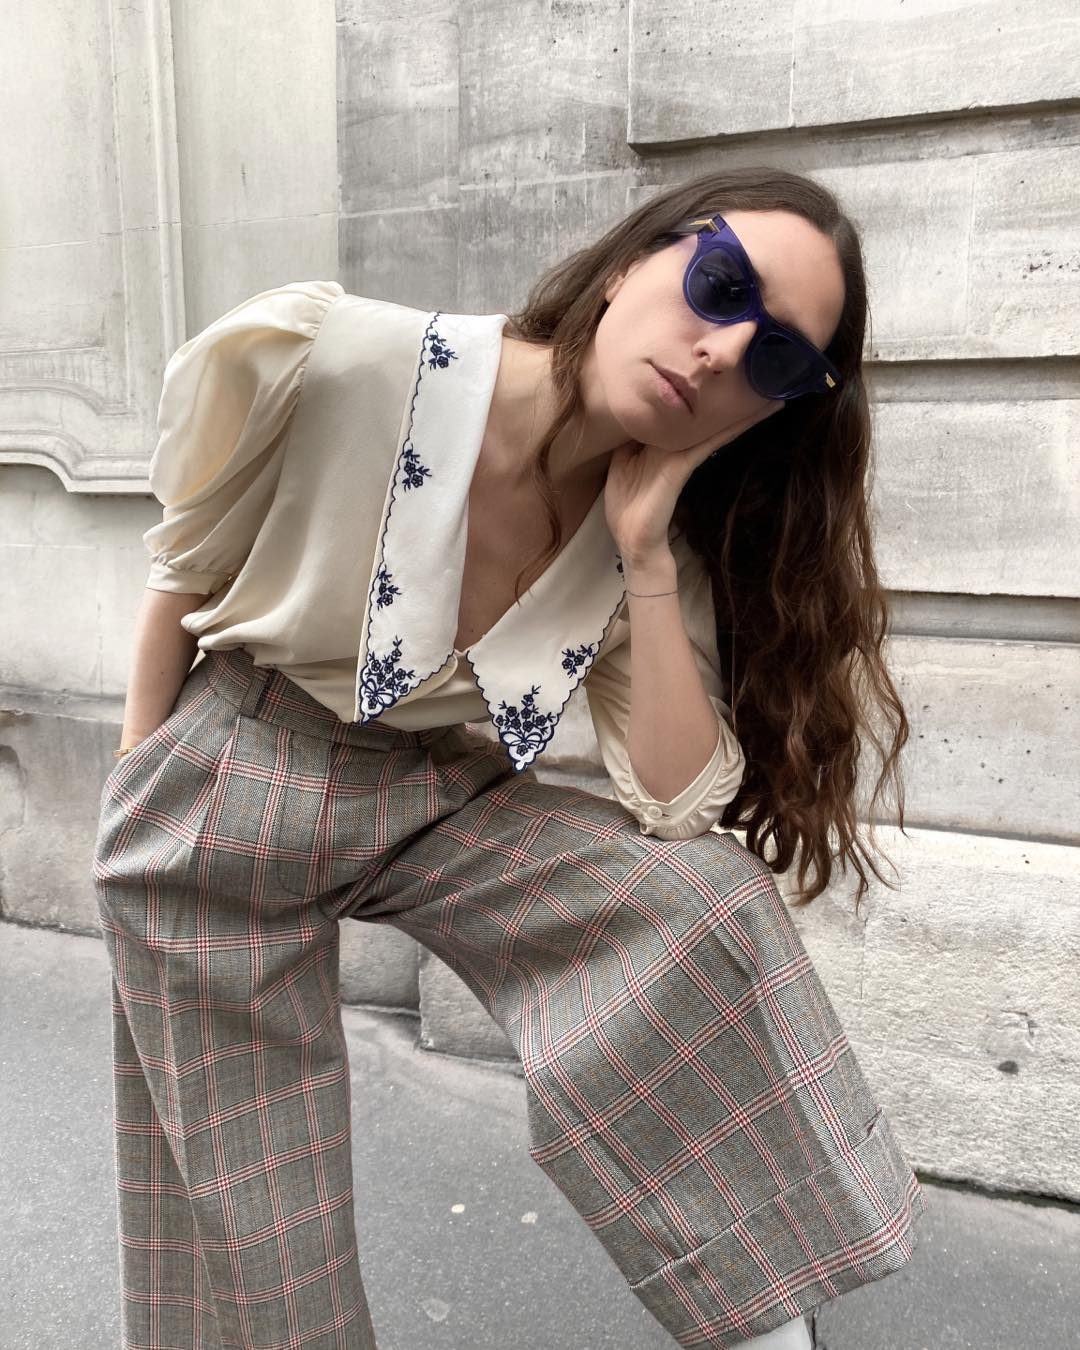 erika-boldrin-miu-miu-exaggerated-collar-silk-blouse-instagram